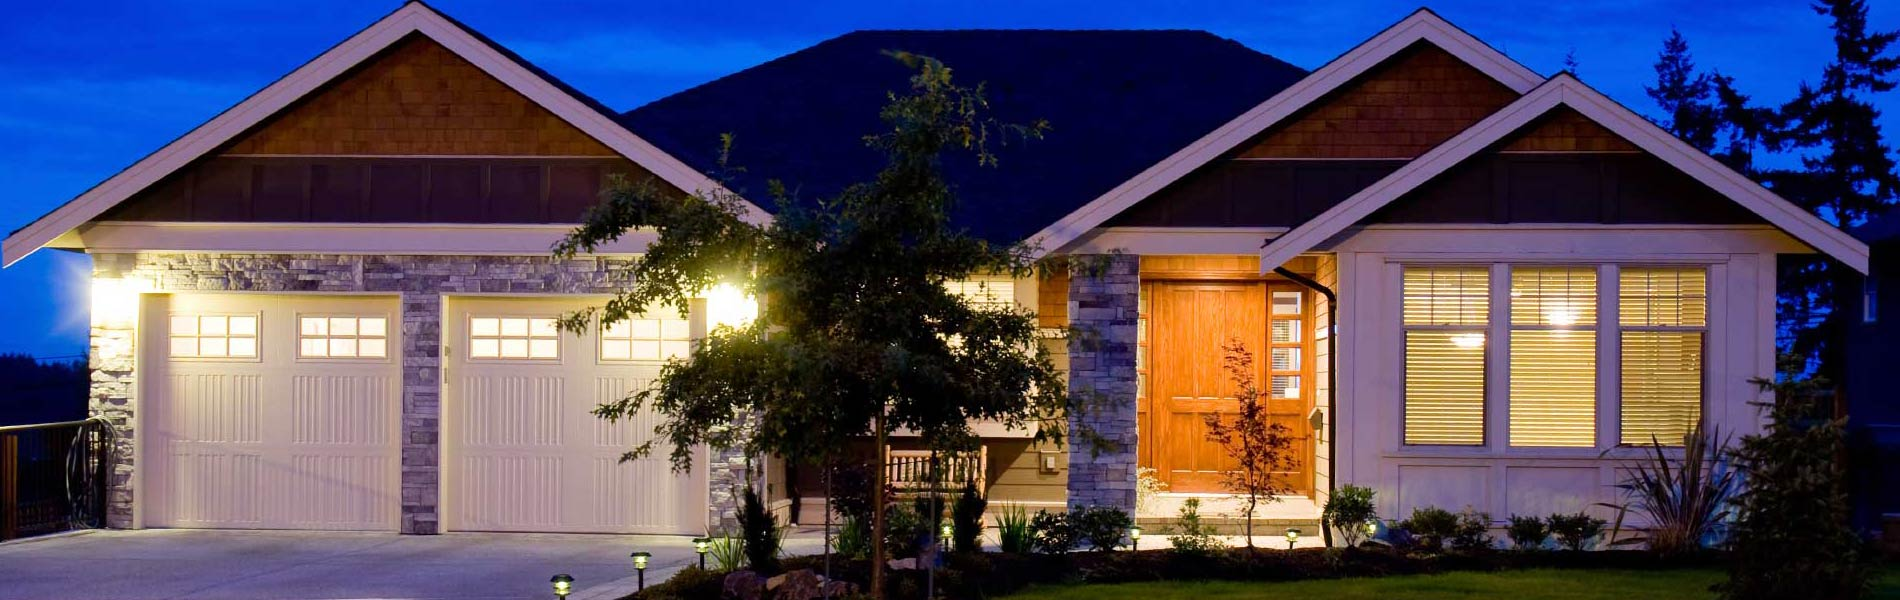 Community Garage Door Service, Dallas, TX 469-300-4001